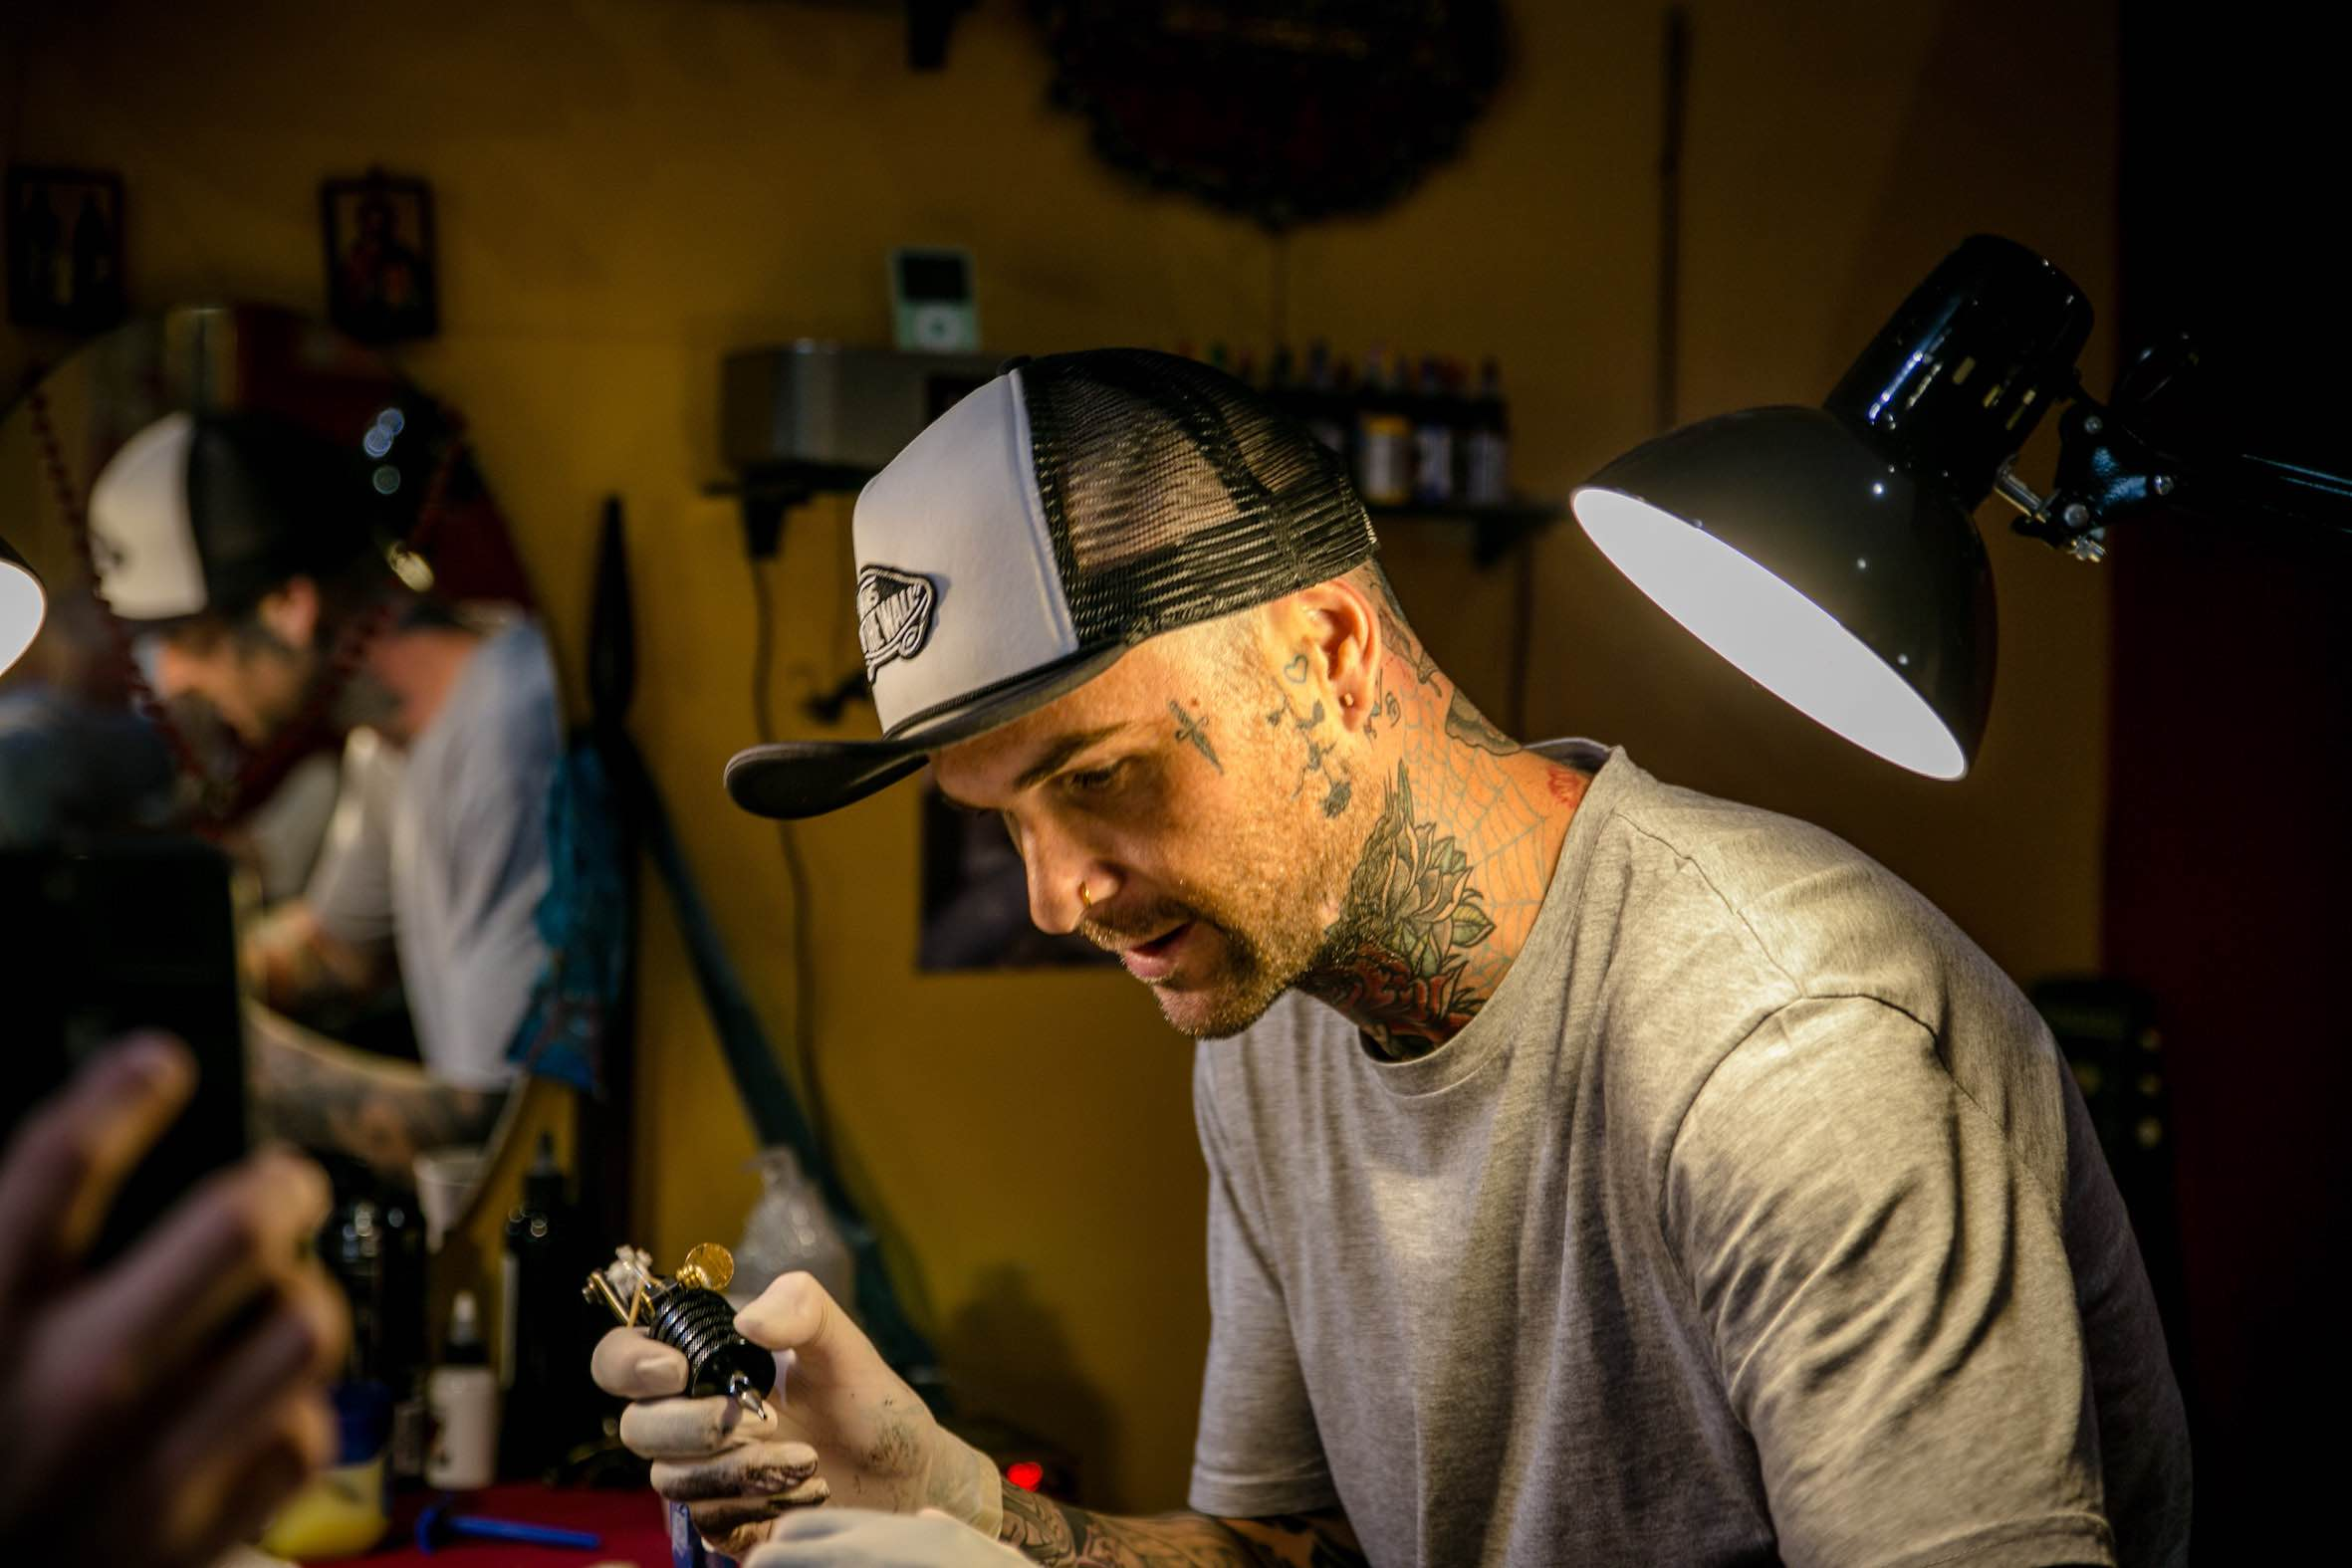 Duran Niemach preparing to tattoo one of his clients